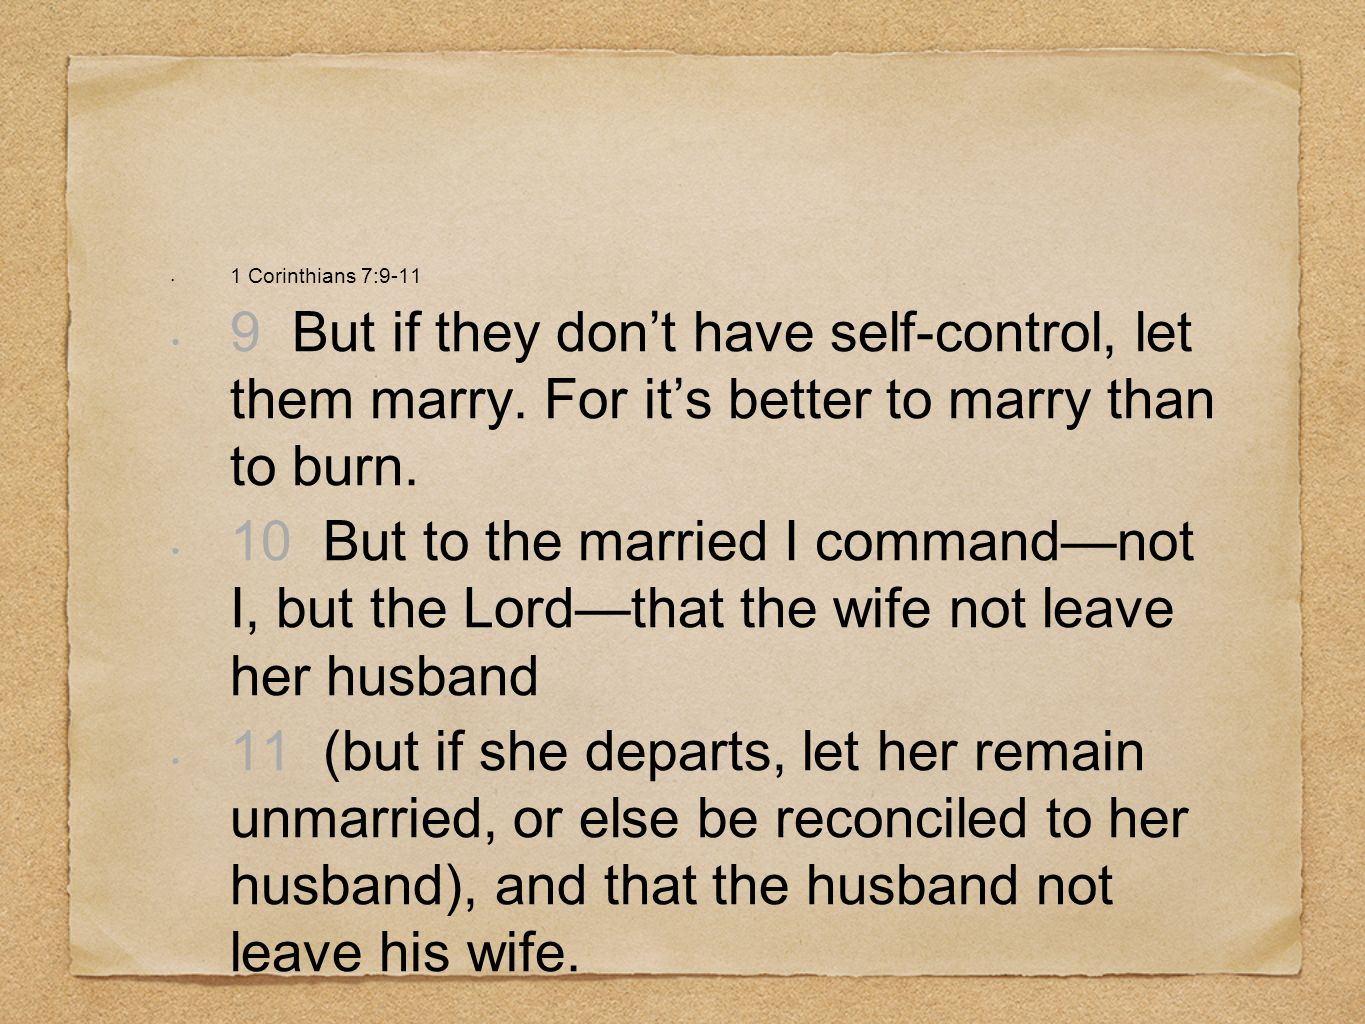 1 Corinthians 7: But if they don't have self-control, let them marry. For it's better to marry than to burn.